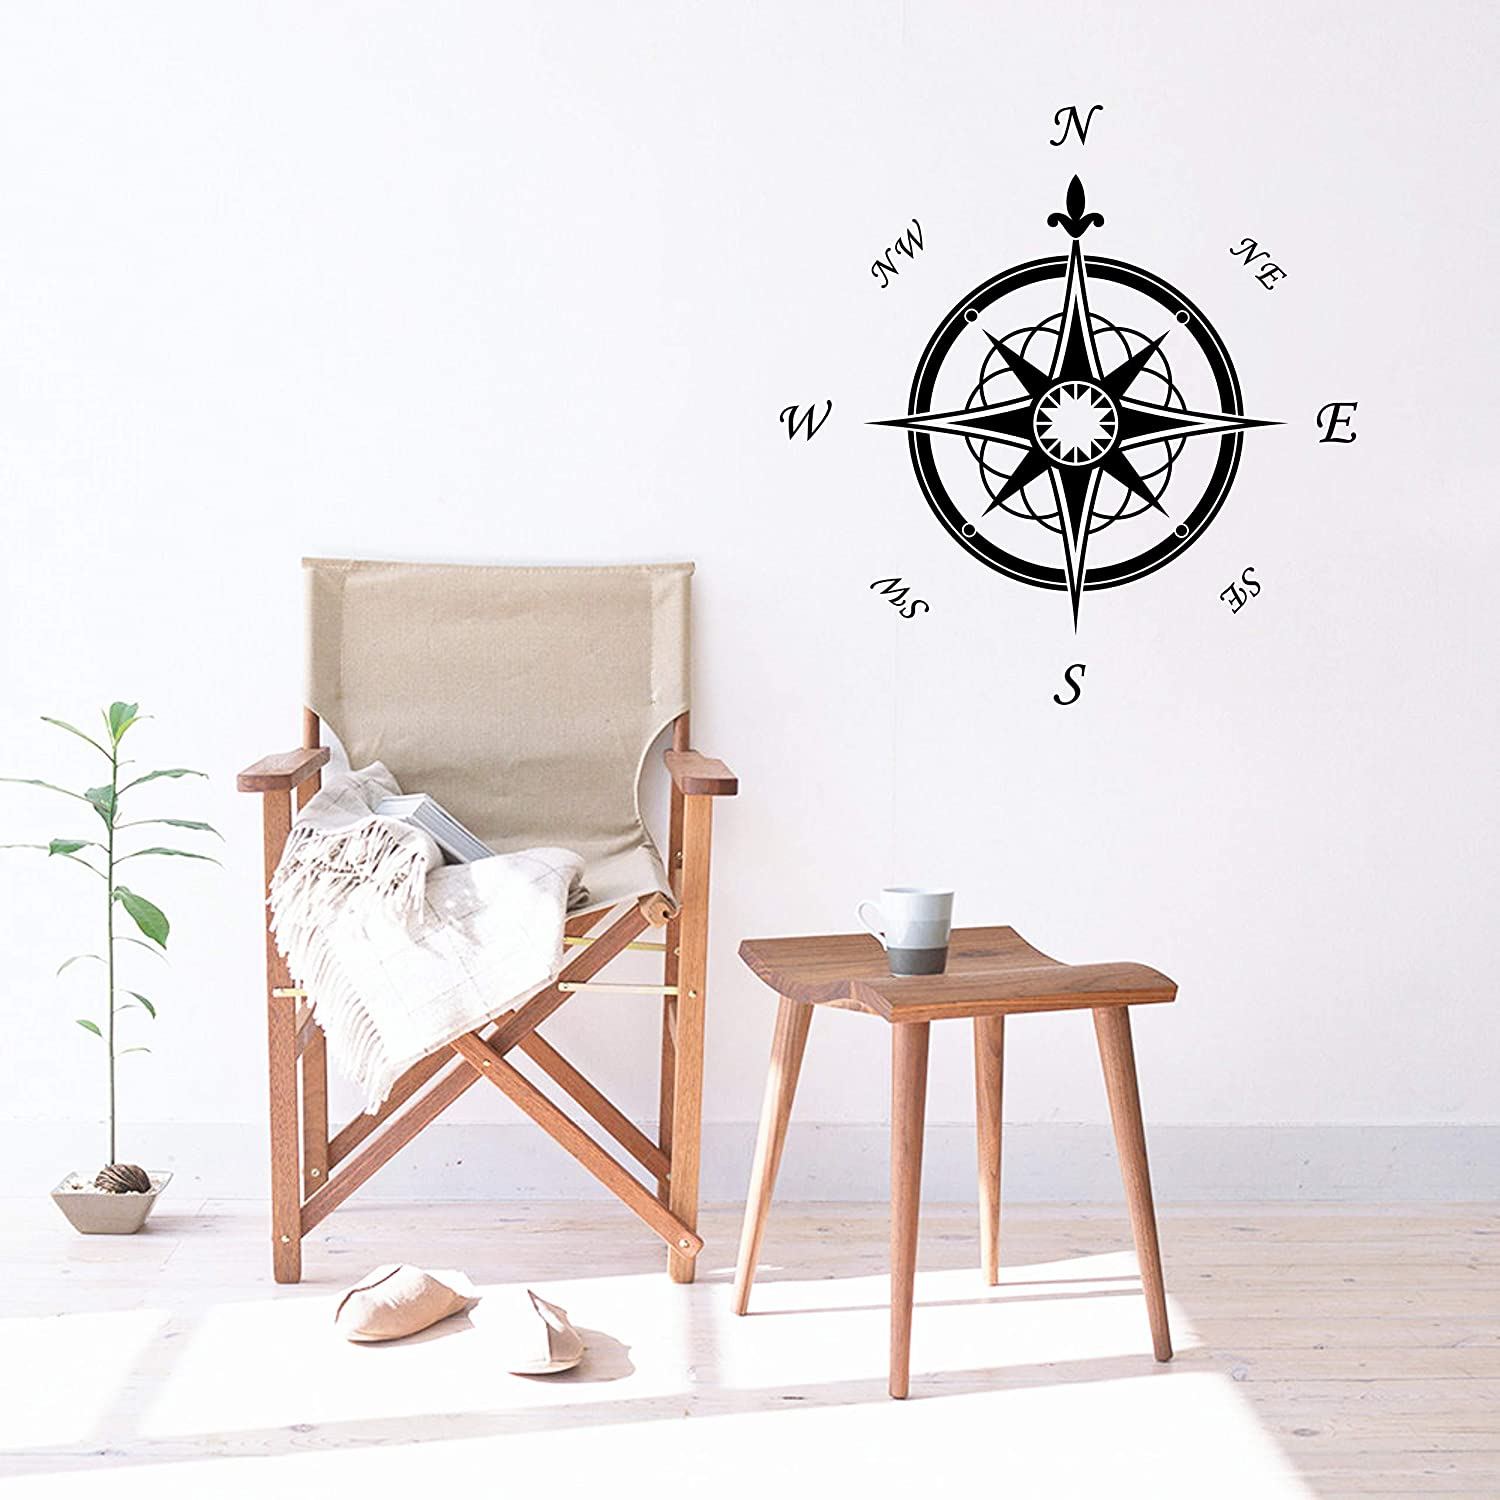 Compass Rose Vinyl Wall Decal, Marine Theme Removable Wall Stickers for Bedroom Living Room School Office, Home Decor Wall Sticker, Nursery Decor Y02 (Black(50x50cm))